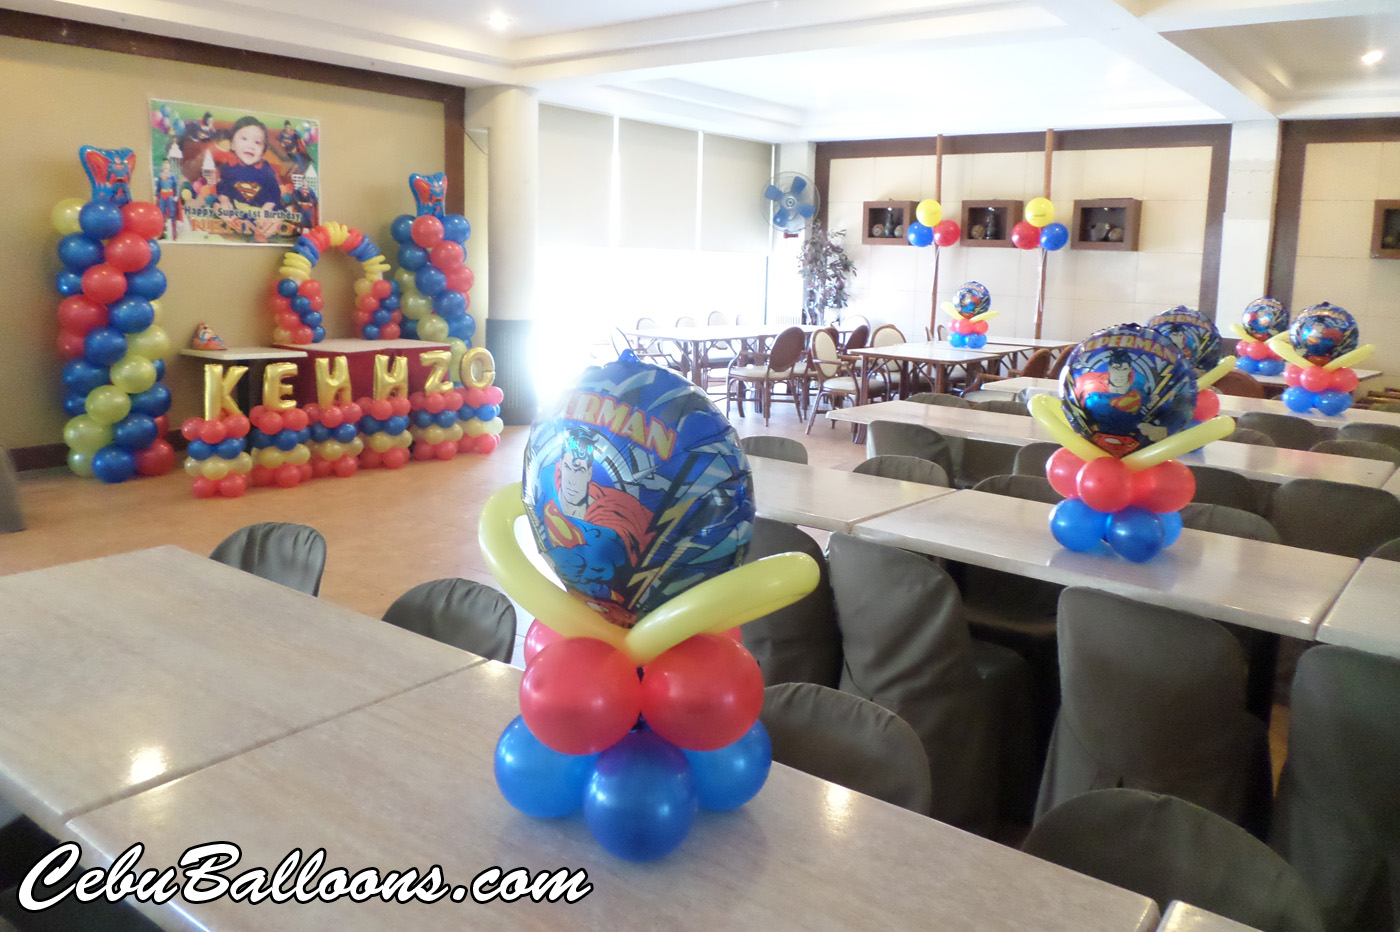 Alphabet balloons letters and numbers cebu